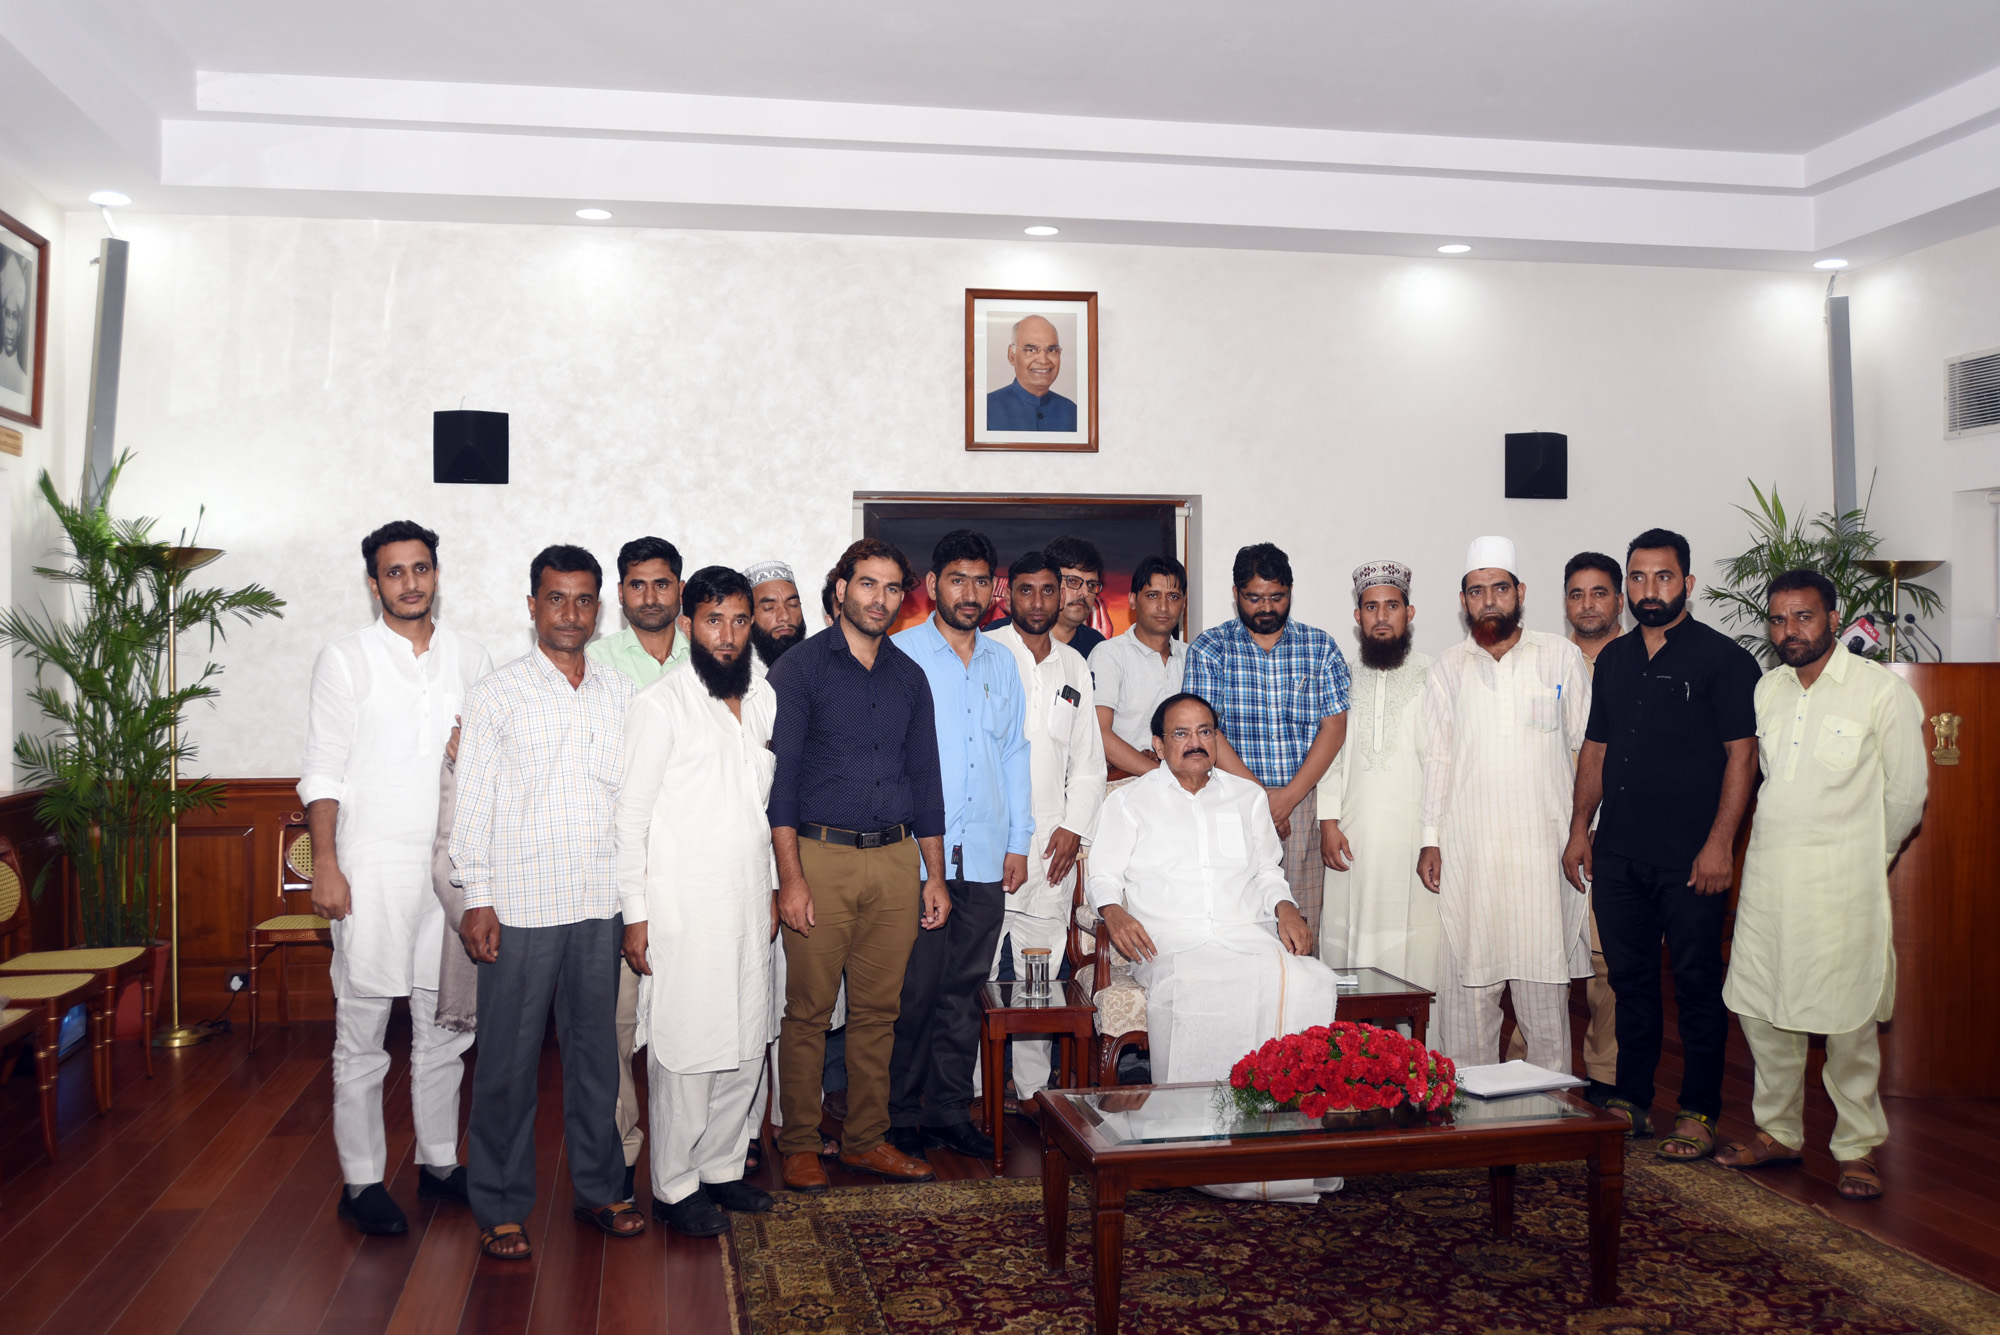 The Vice President, Shri M. Venkaiah Naidu with the delegation of Sarpanches from Jammu and Kashmir, in New Delhi on September 10. 2019.